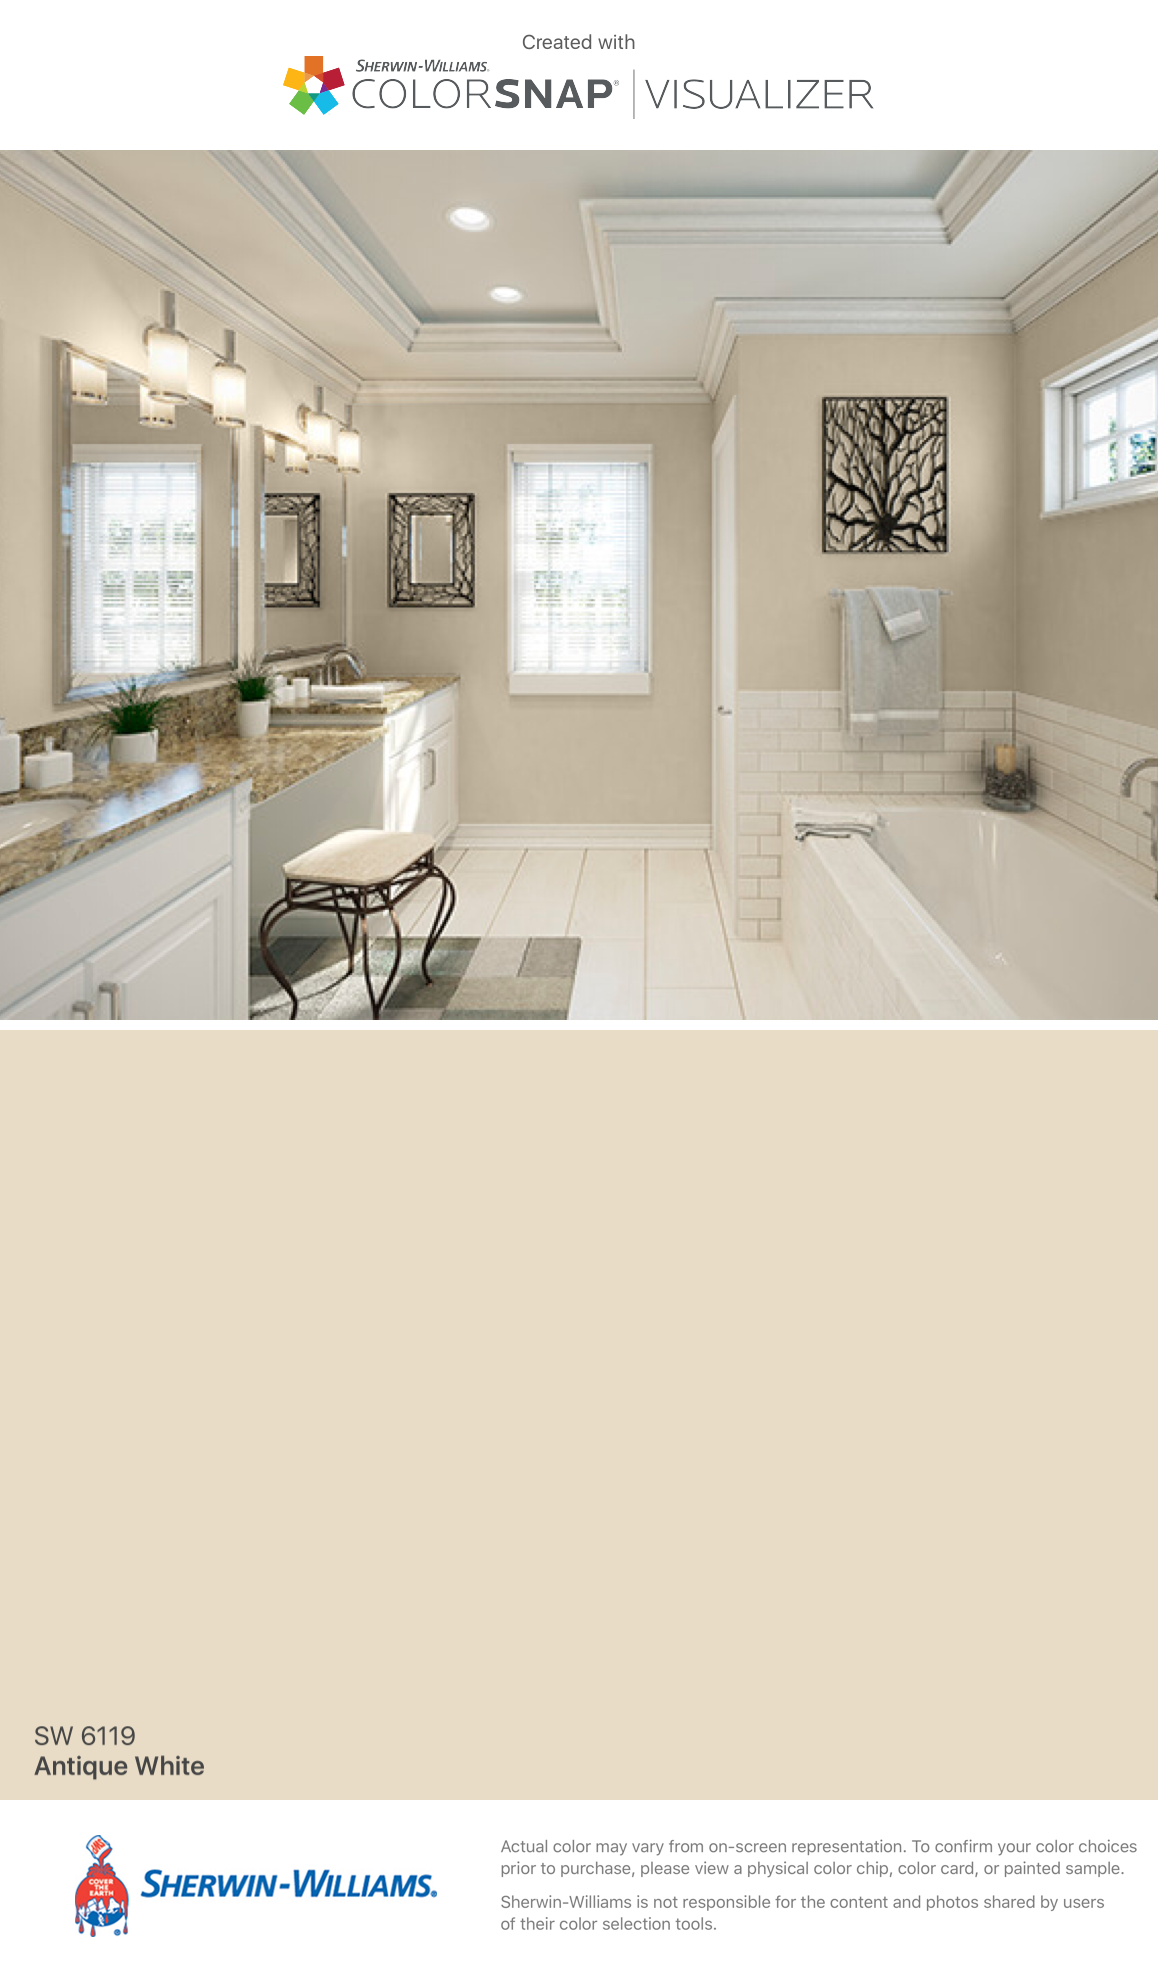 I Found This Color With Colorsnap Visualizer For Iphone By Sherwin Williams Antique White Sw 6119